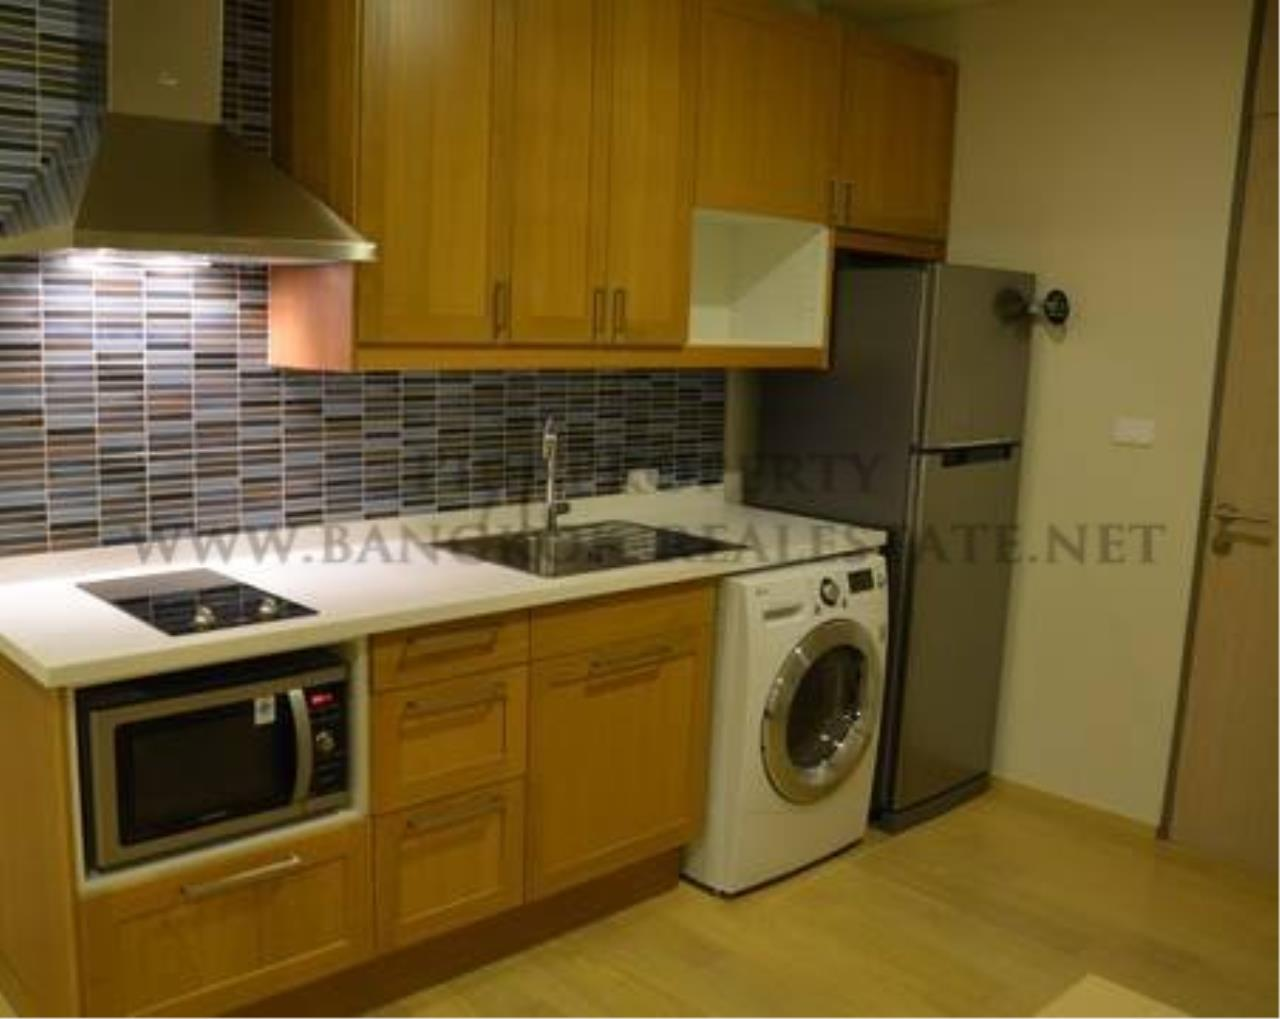 Piri Property Agency's Noble Reform - Nice 1 Bedroom Condo for Rent - 54 SQM 3